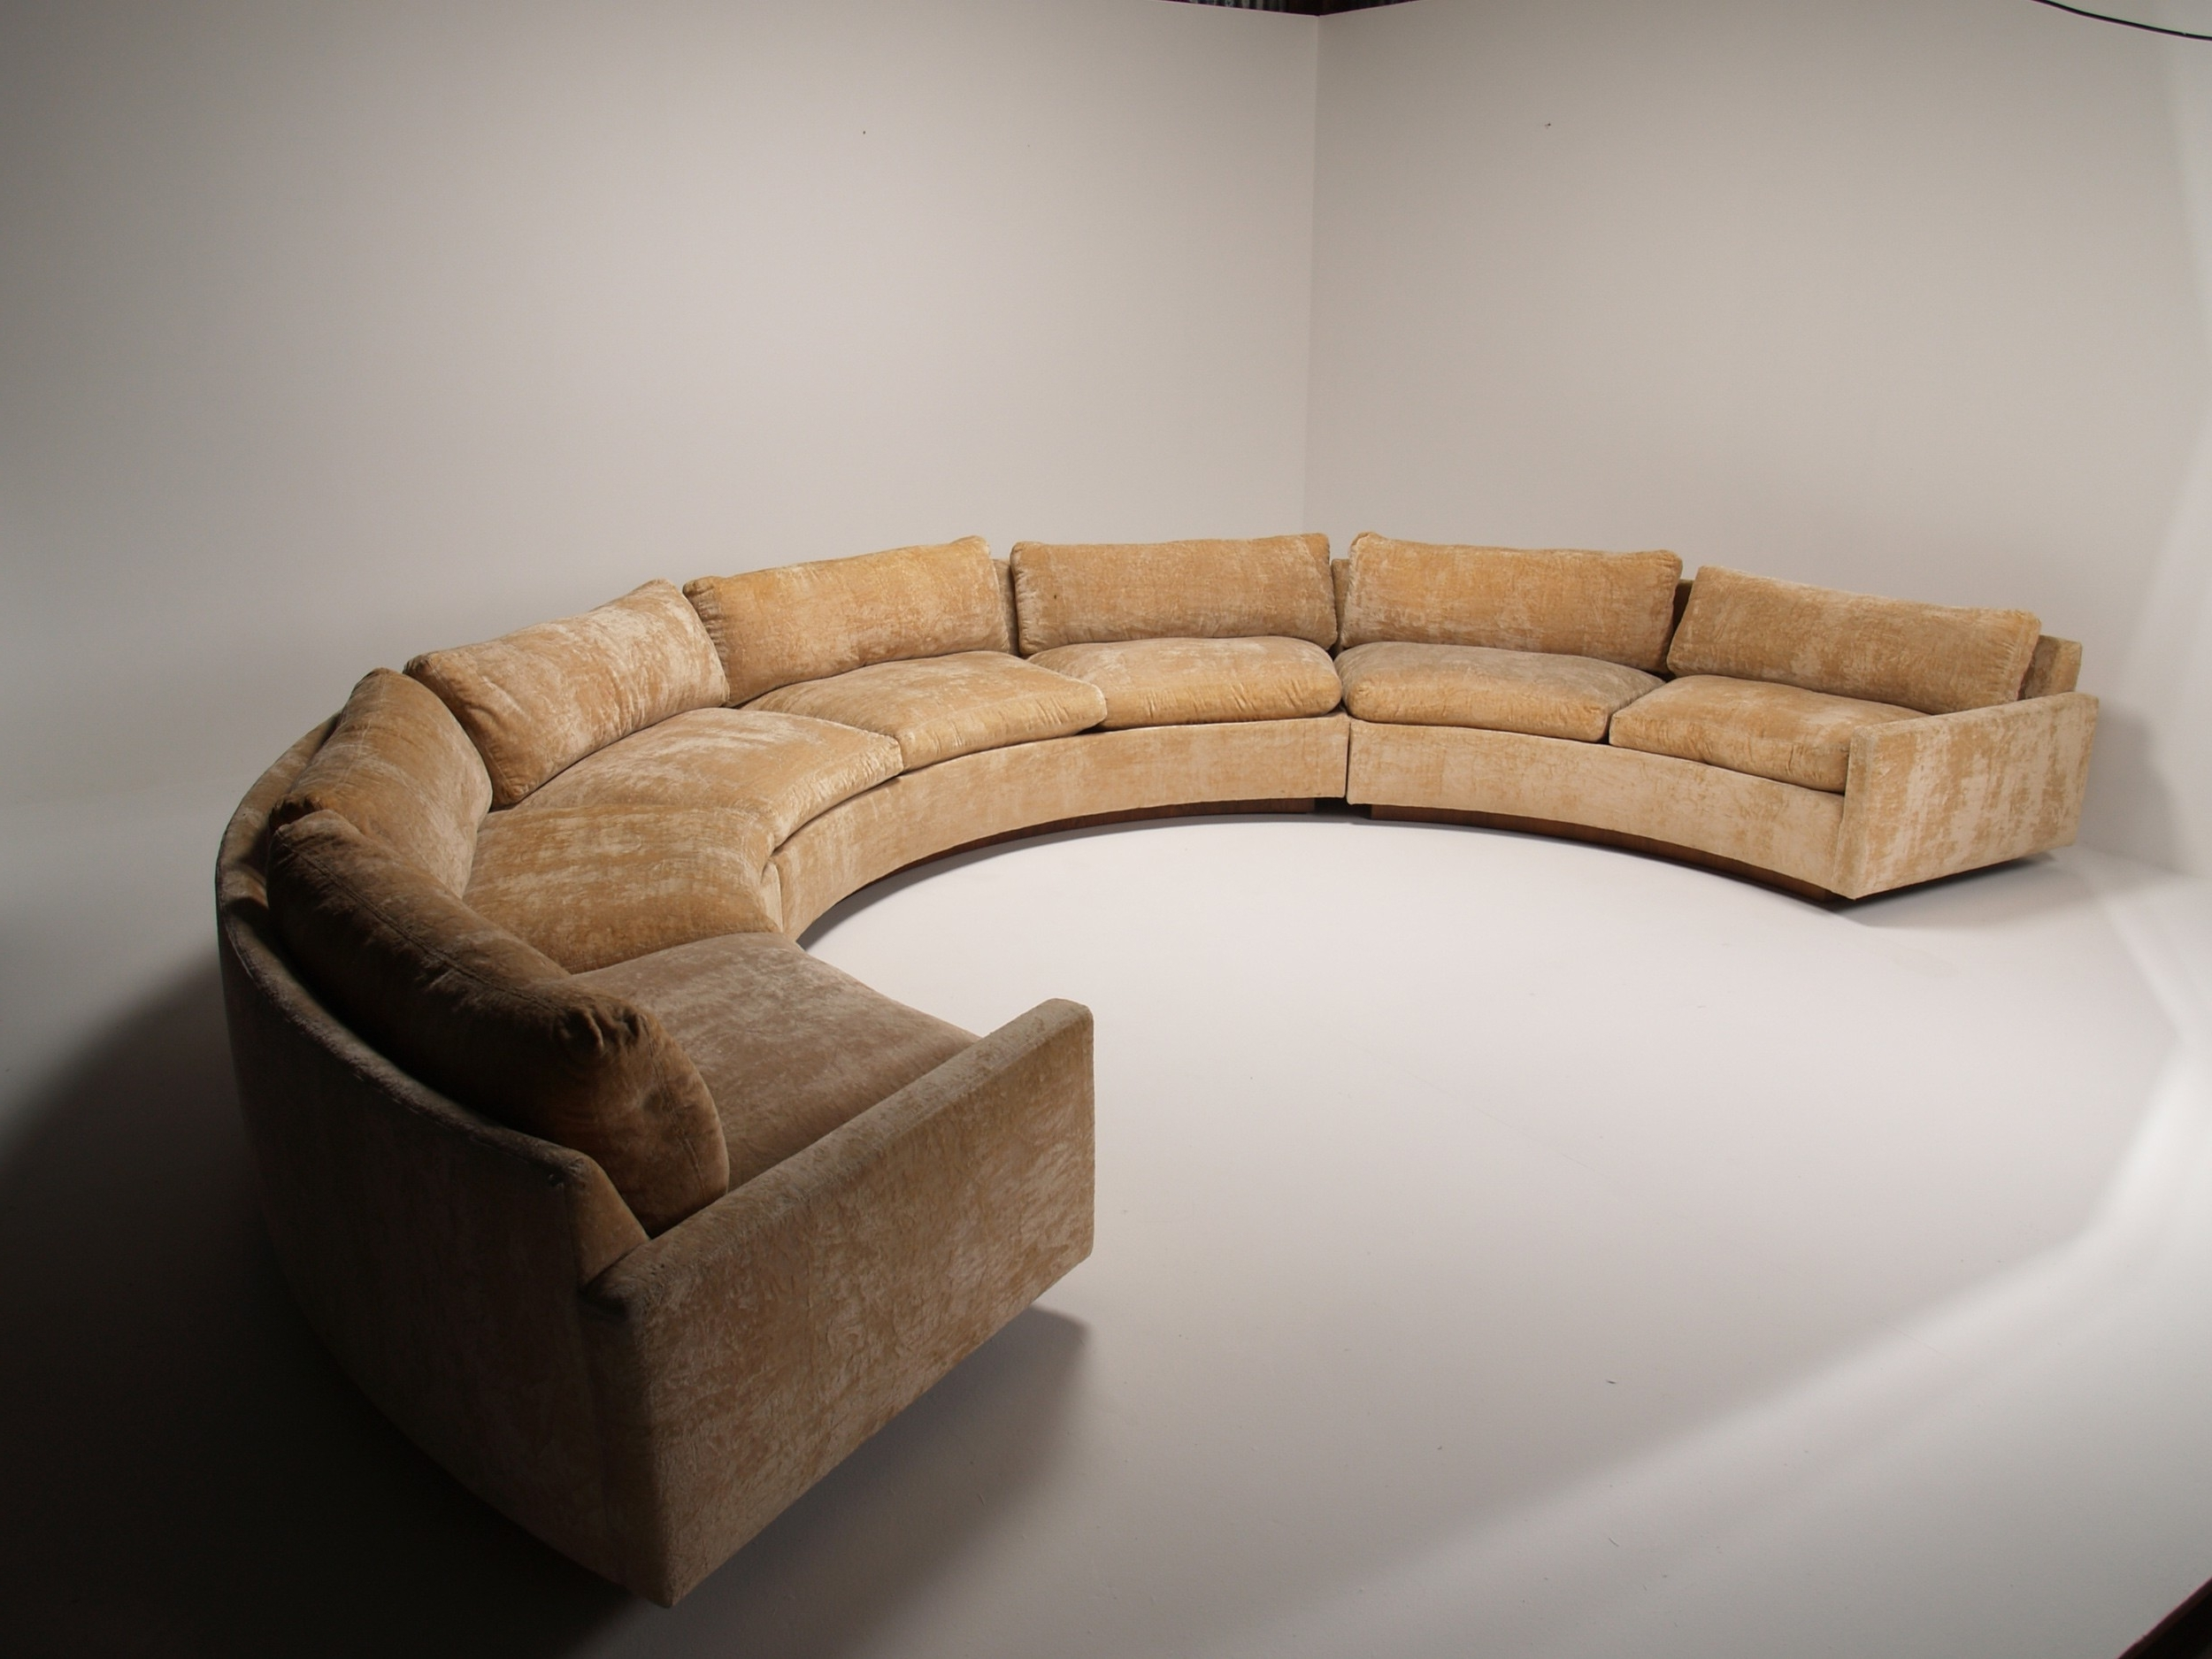 Modern Curved Sofas With Couches Rounded Sectional Leather For Within Latest Rounded Sofas (View 3 of 15)